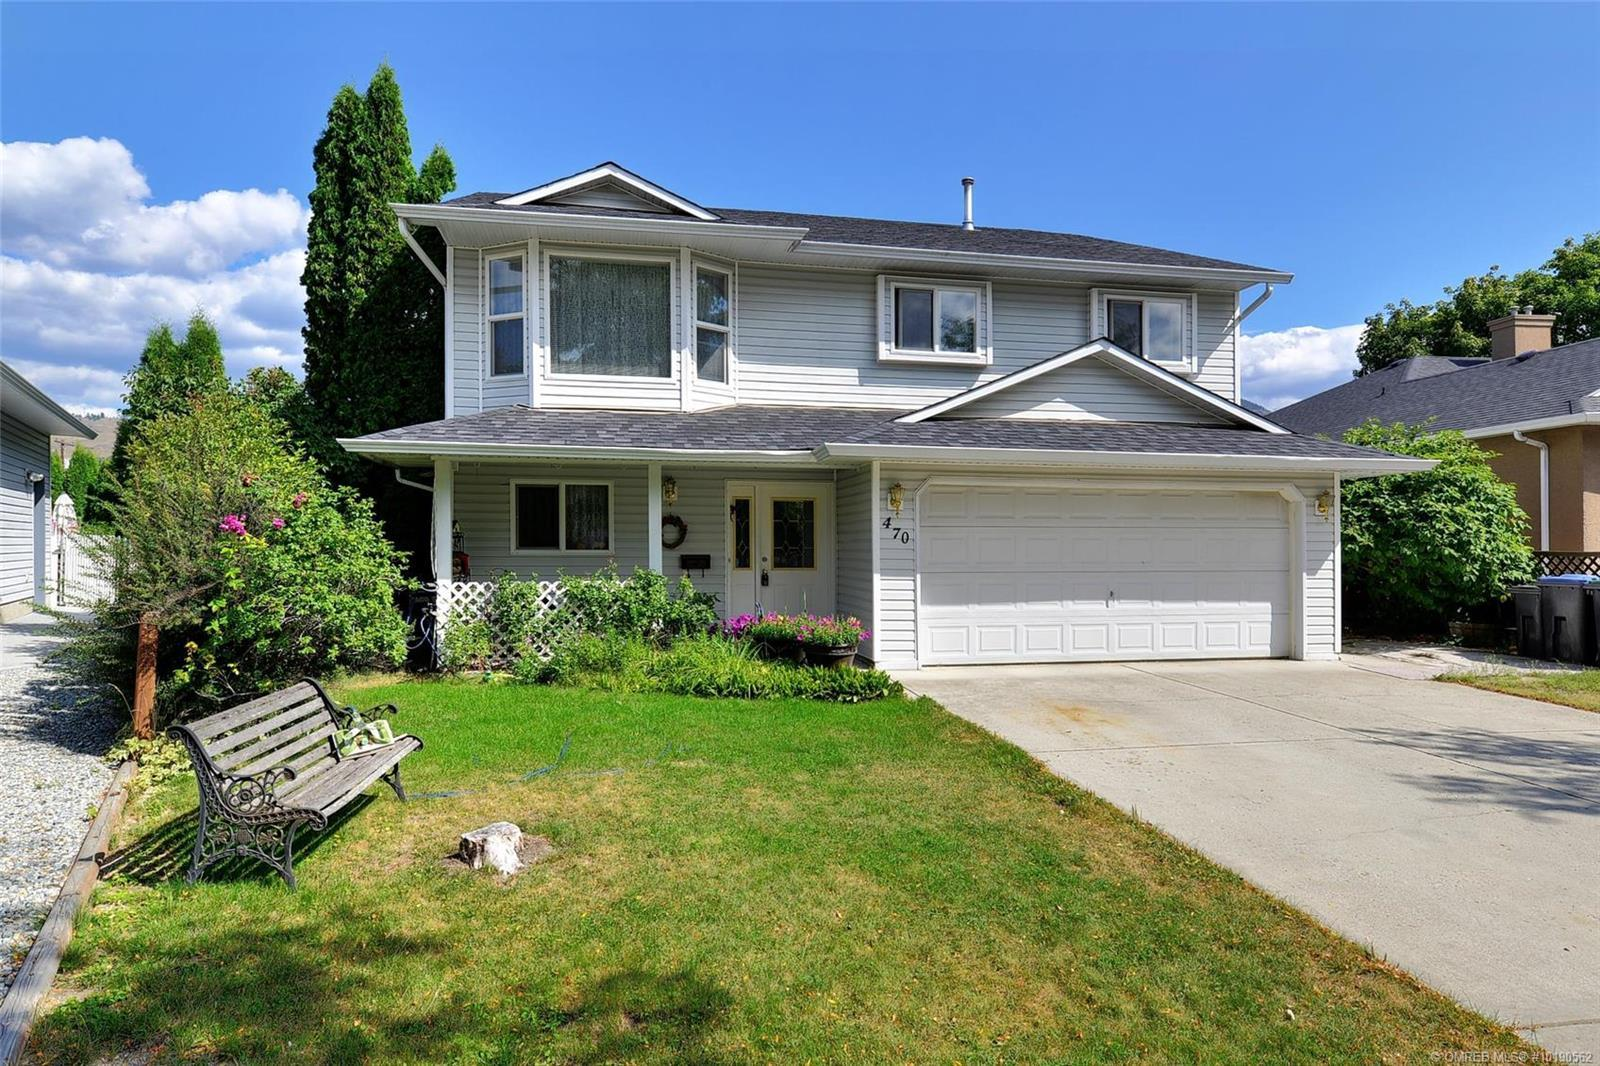 Removed: 470 Parfitt Court, Kelowna, BC - Removed on 2019-09-17 14:30:28